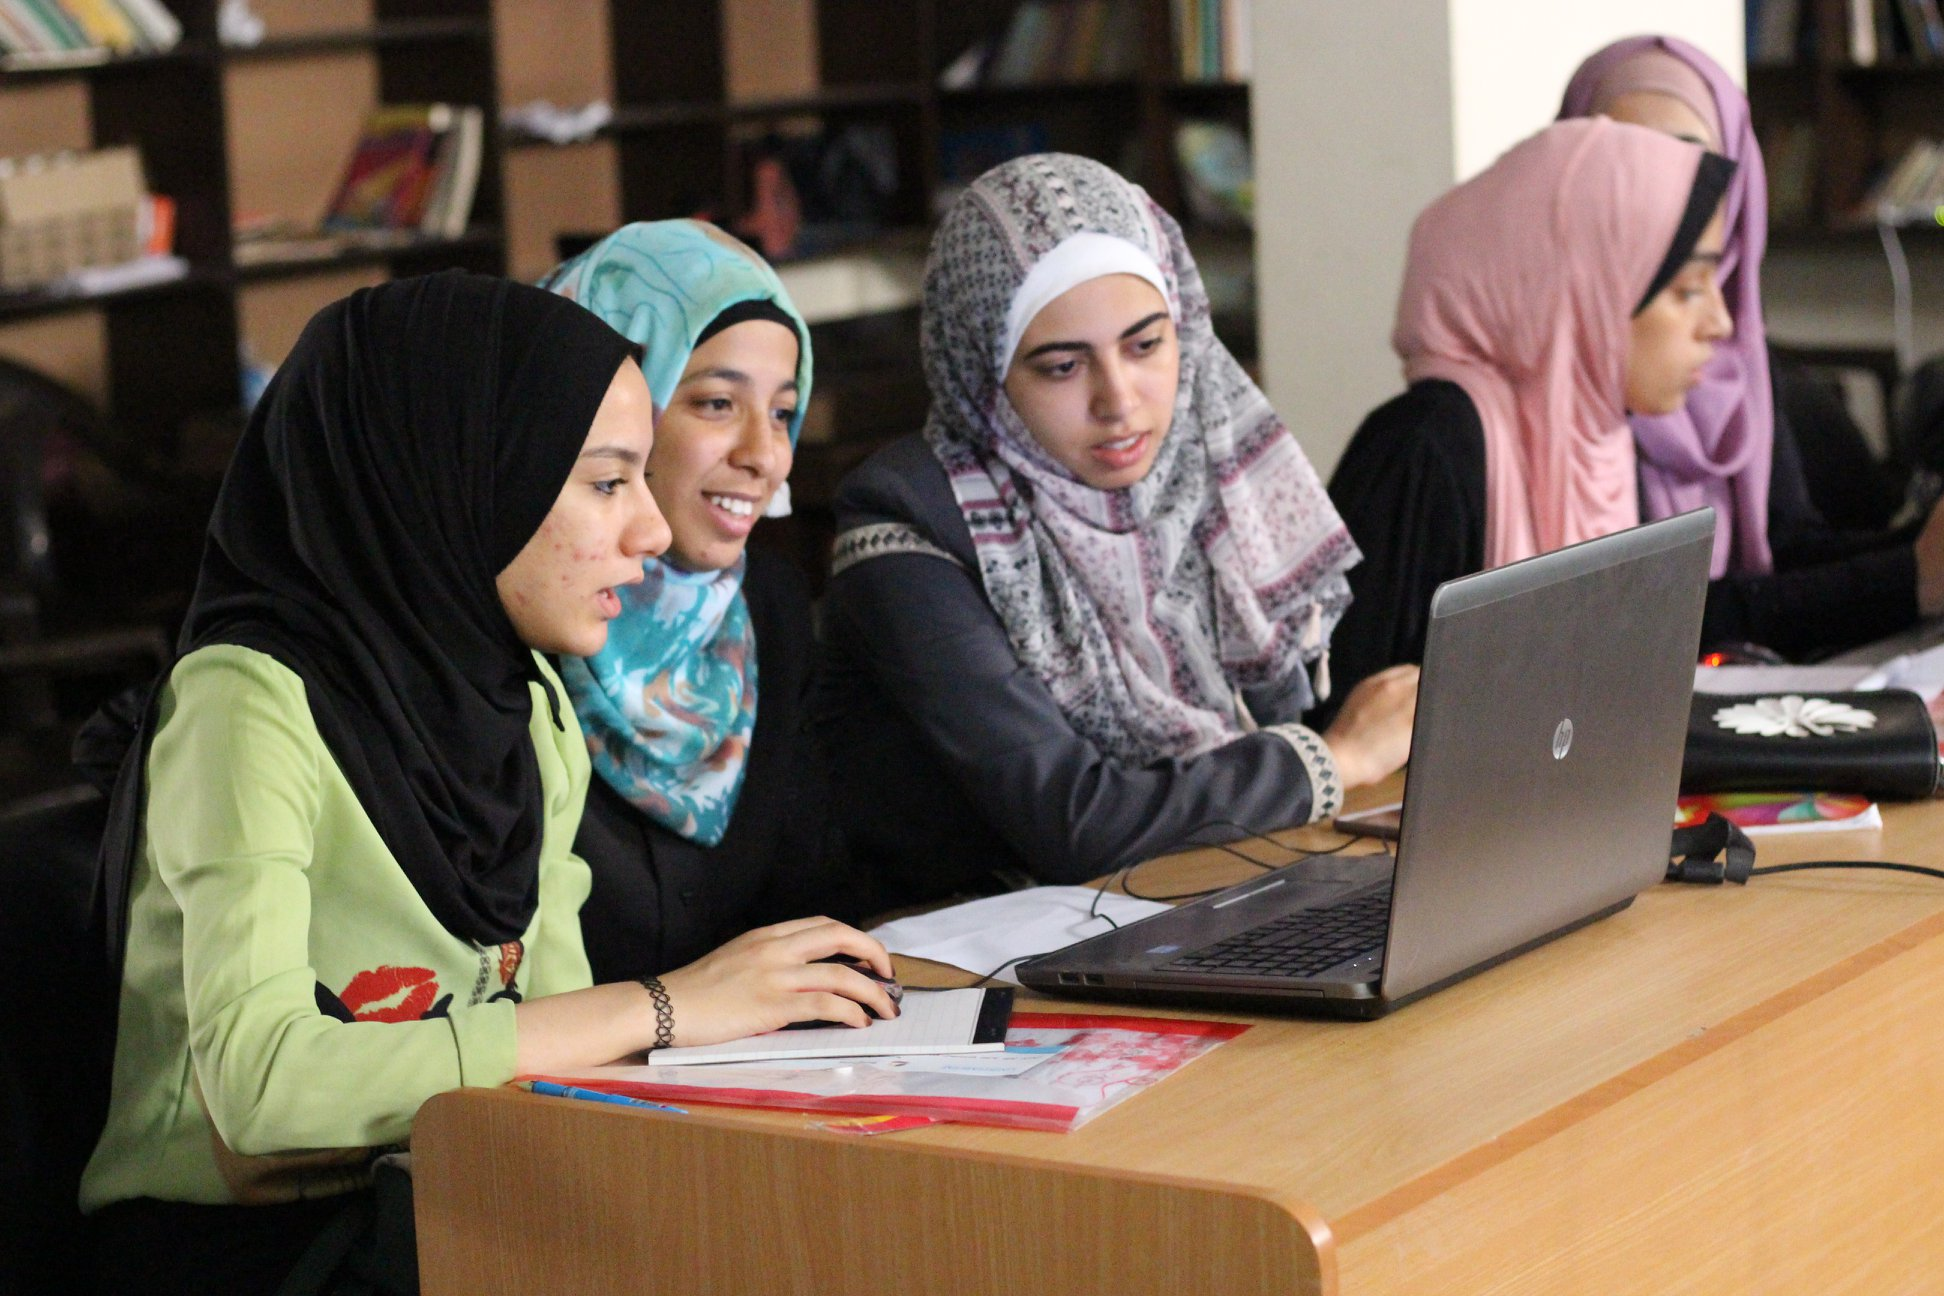 Female participants at the Al-Zawayada workshop worked together in Minecraft. Credit: UN-Habitat